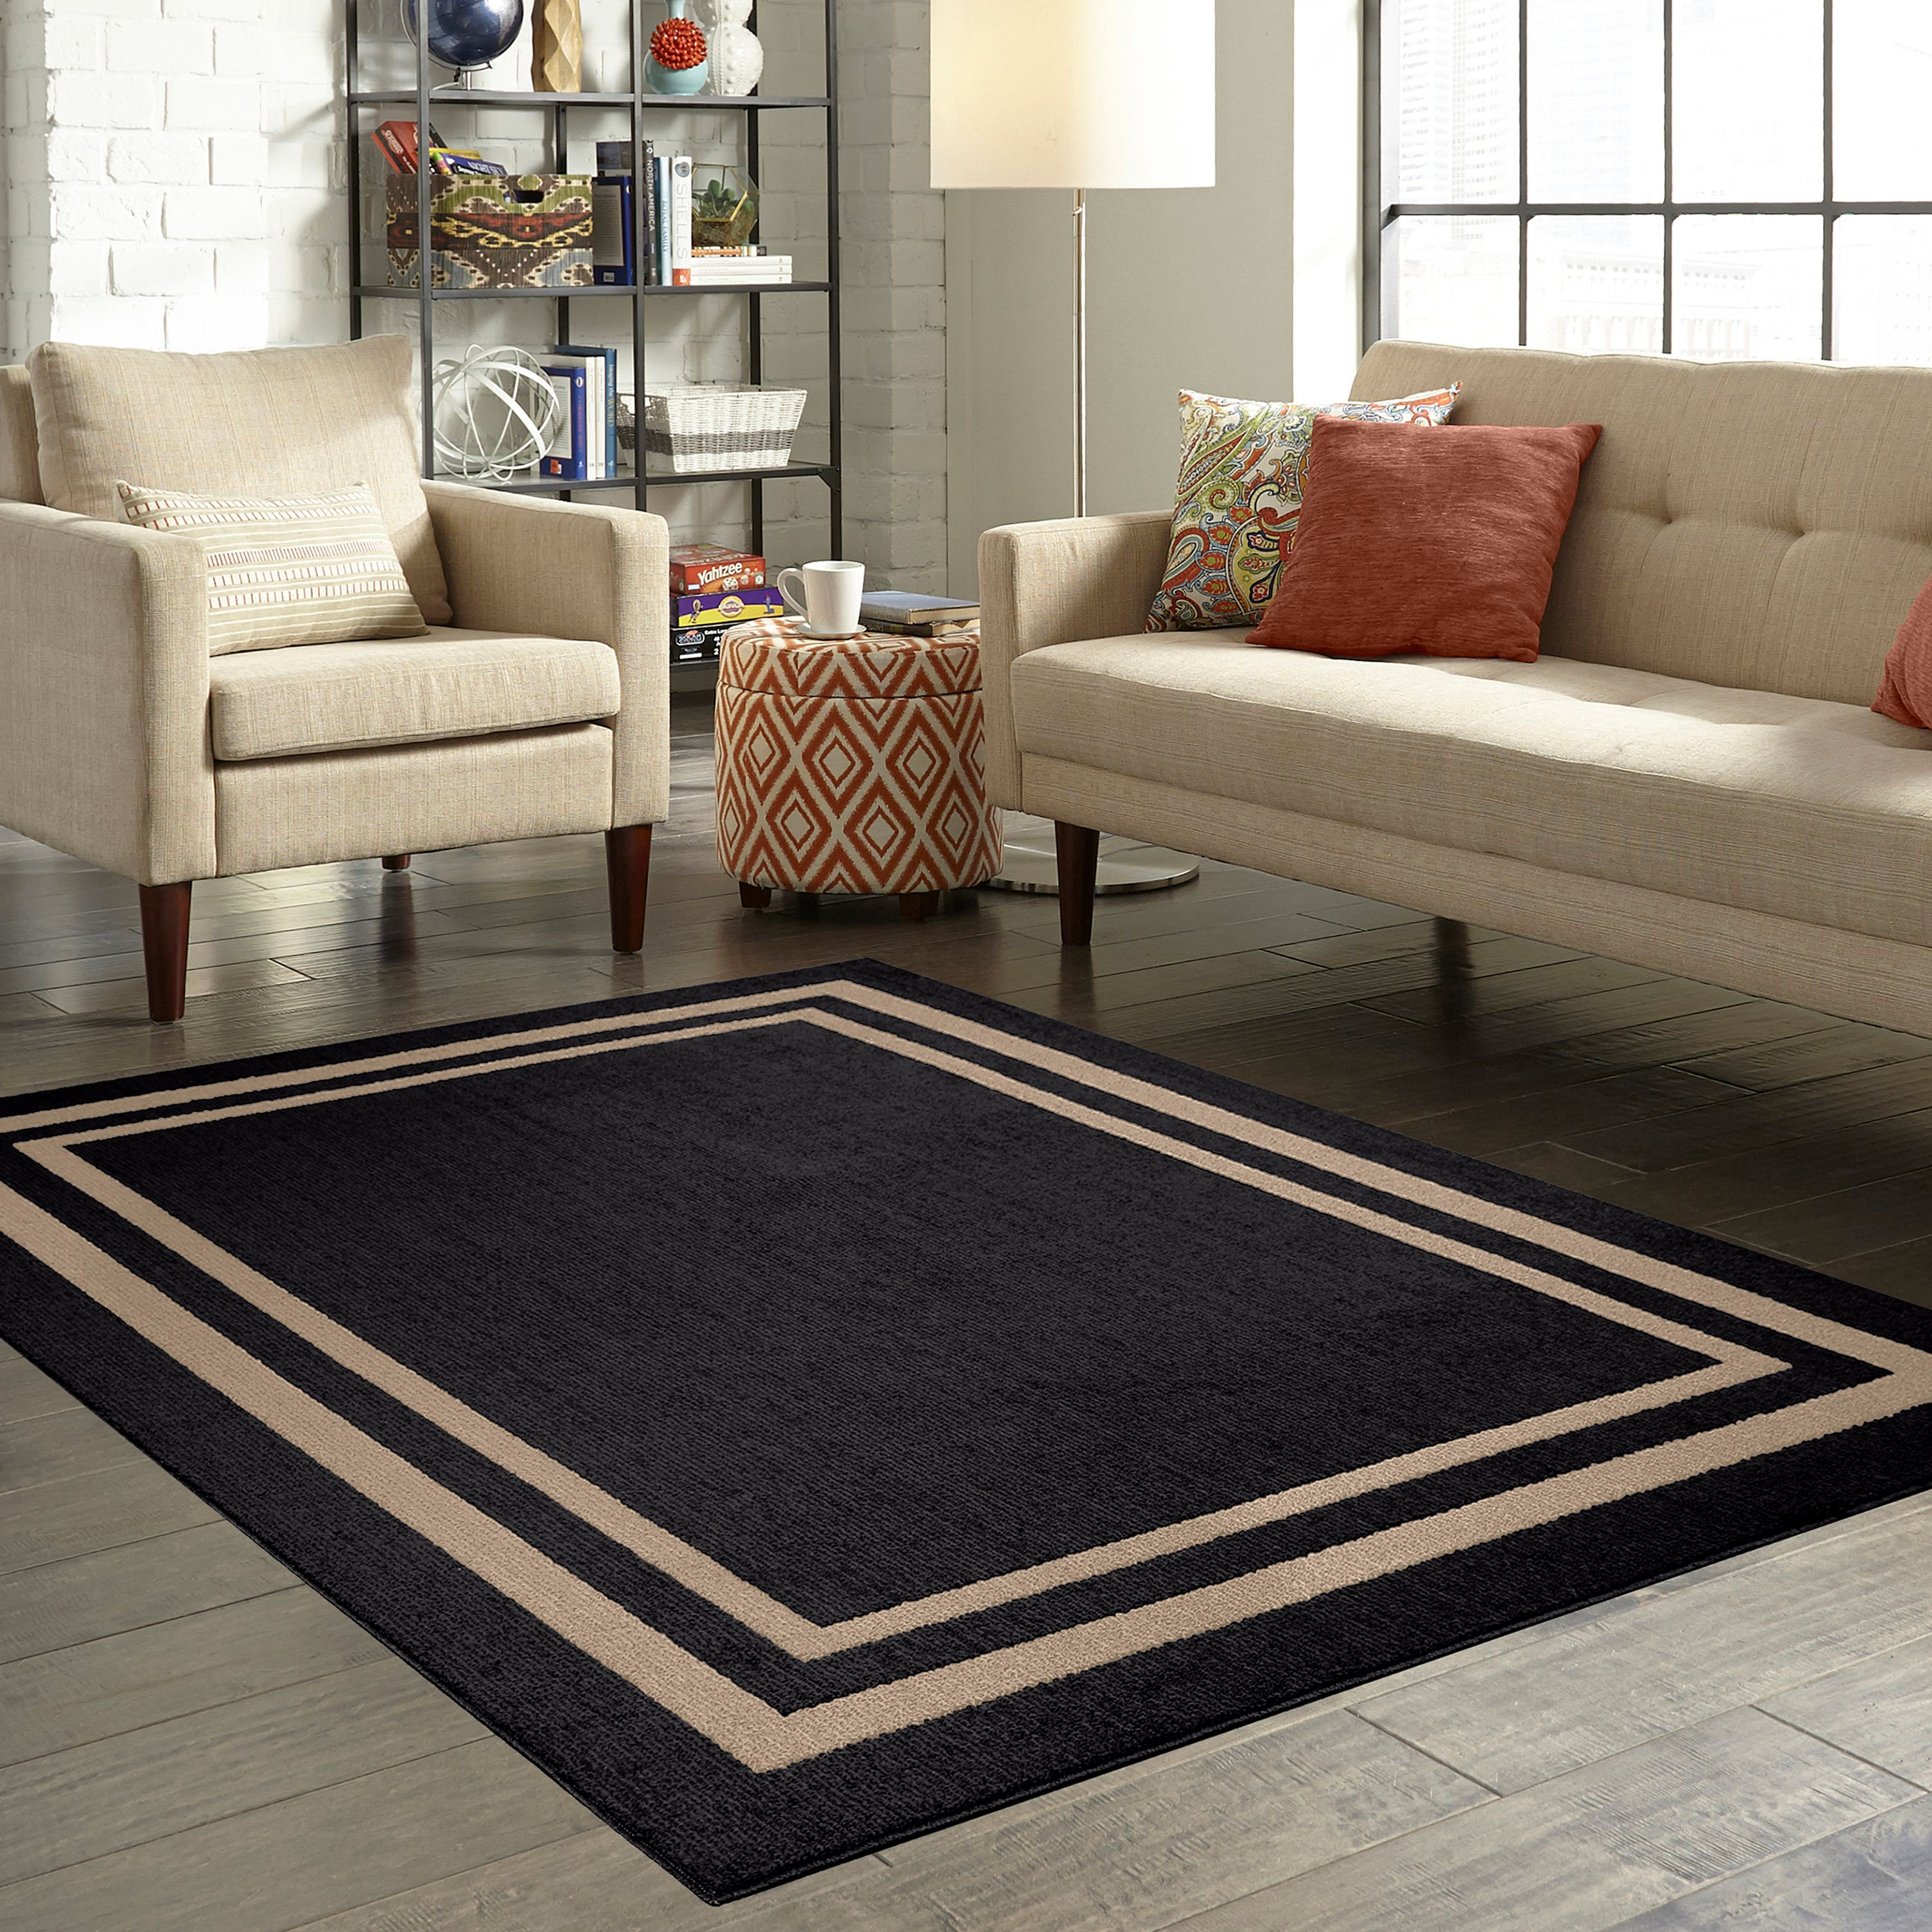 Mainstays Frame Border High Low Loop Area Rug Or Runner, Multiple Sizes And  Colors